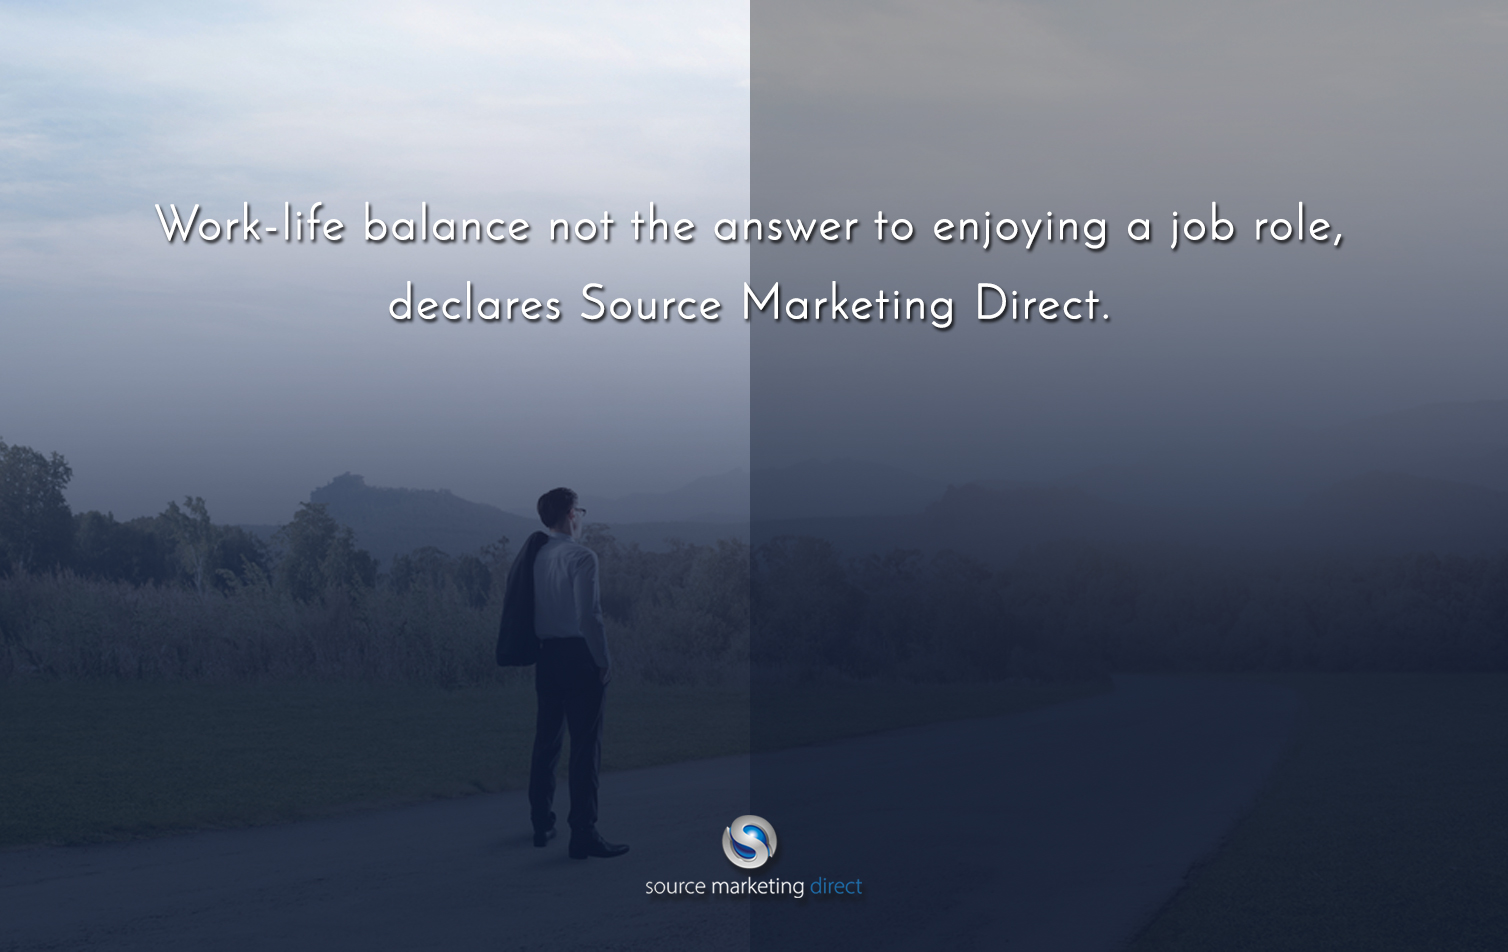 Work-life balance not the answer to enjoying a job role, declares Source Marketing Direct.